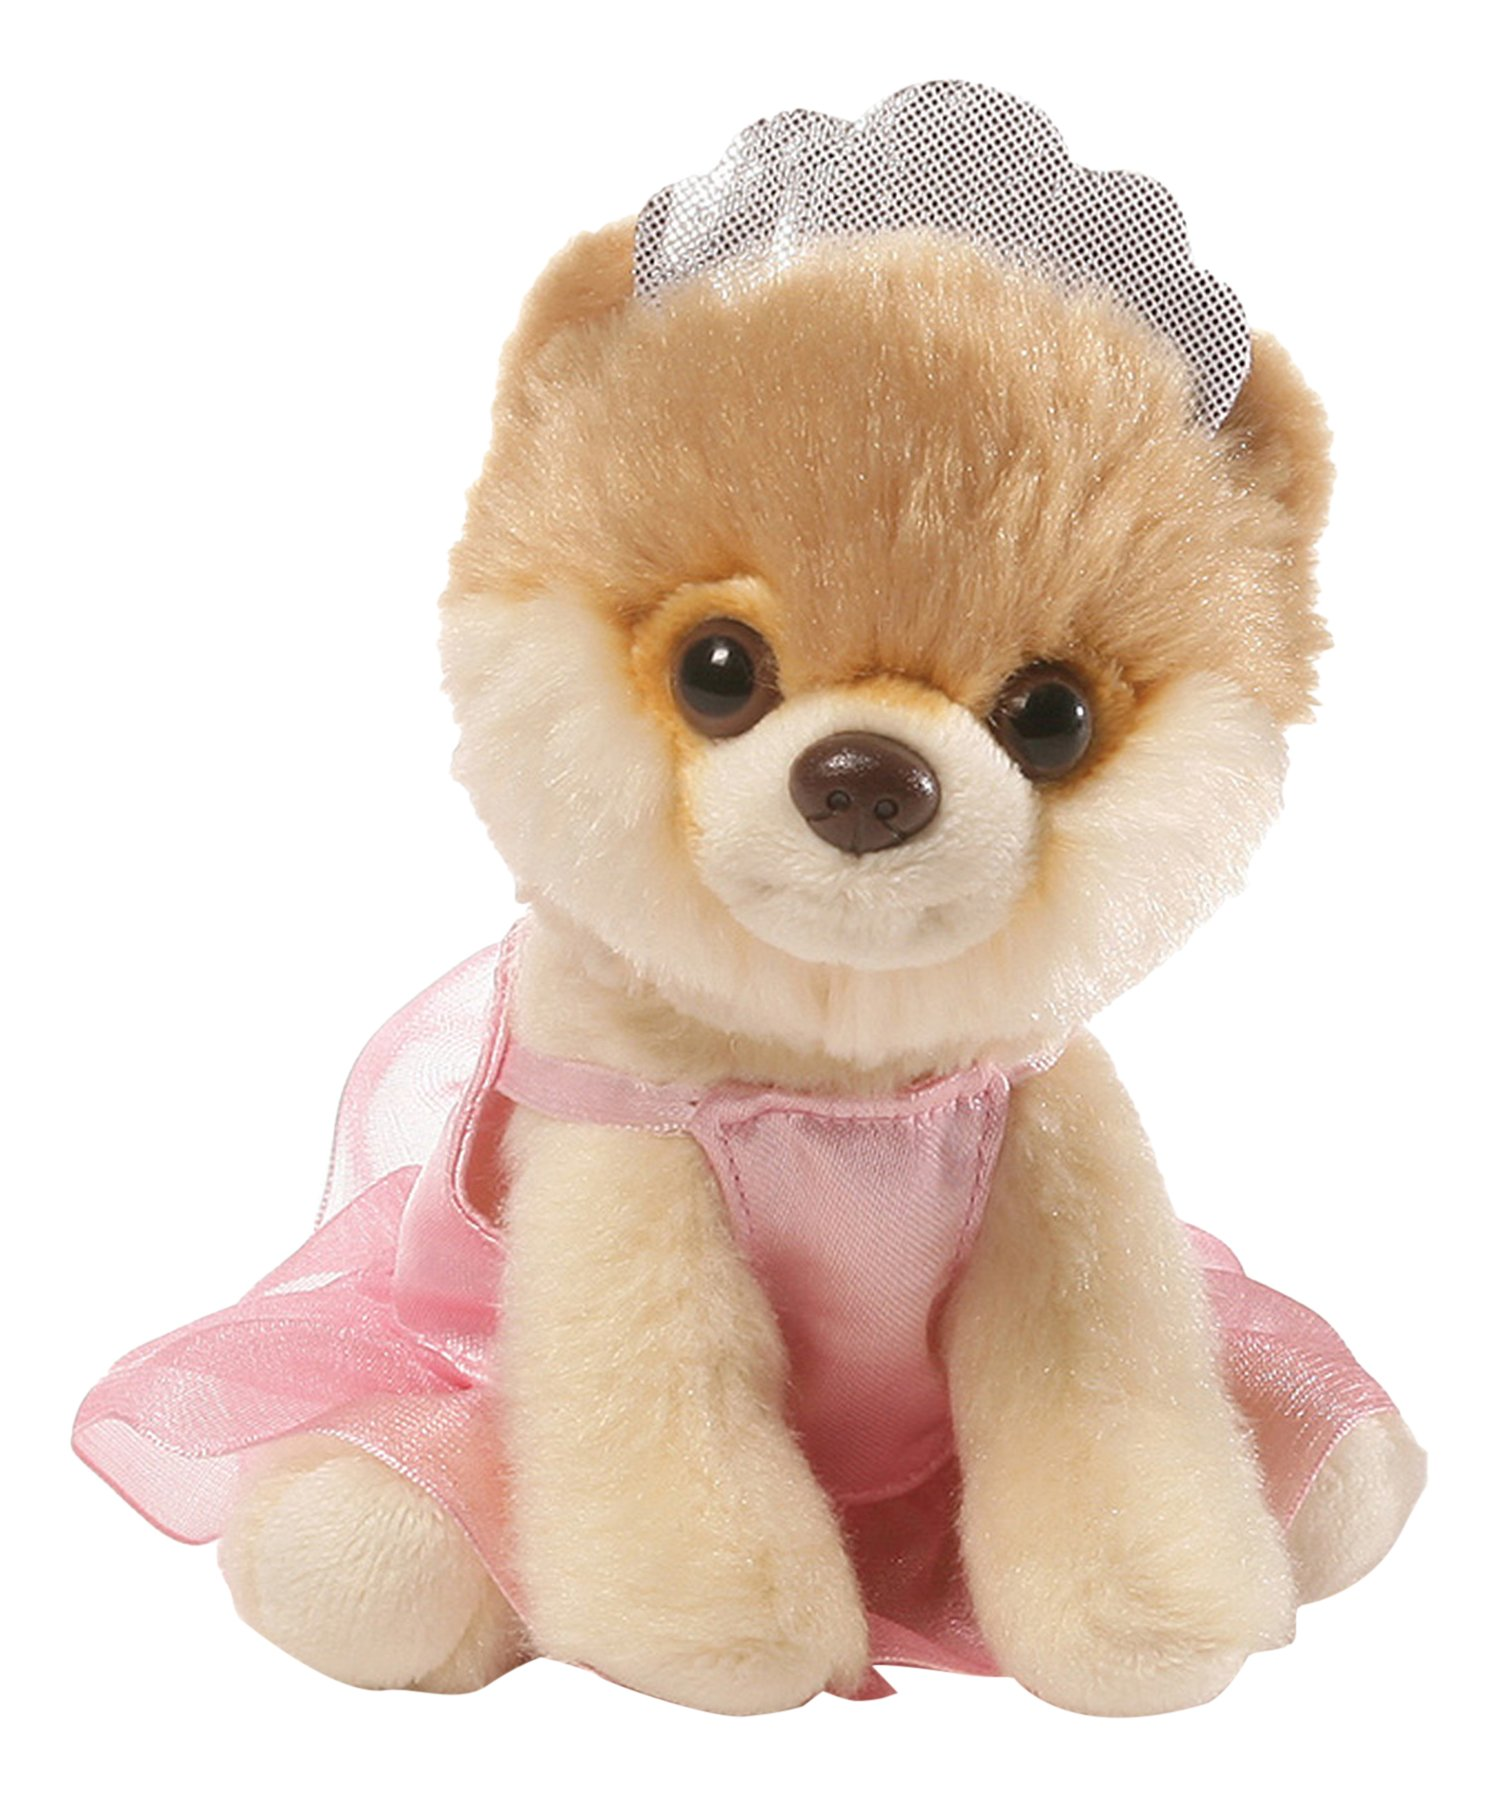 GUND Itty Bitty Boo Ballerina Dog Stuffed Animal Plush, 5'' by GUND